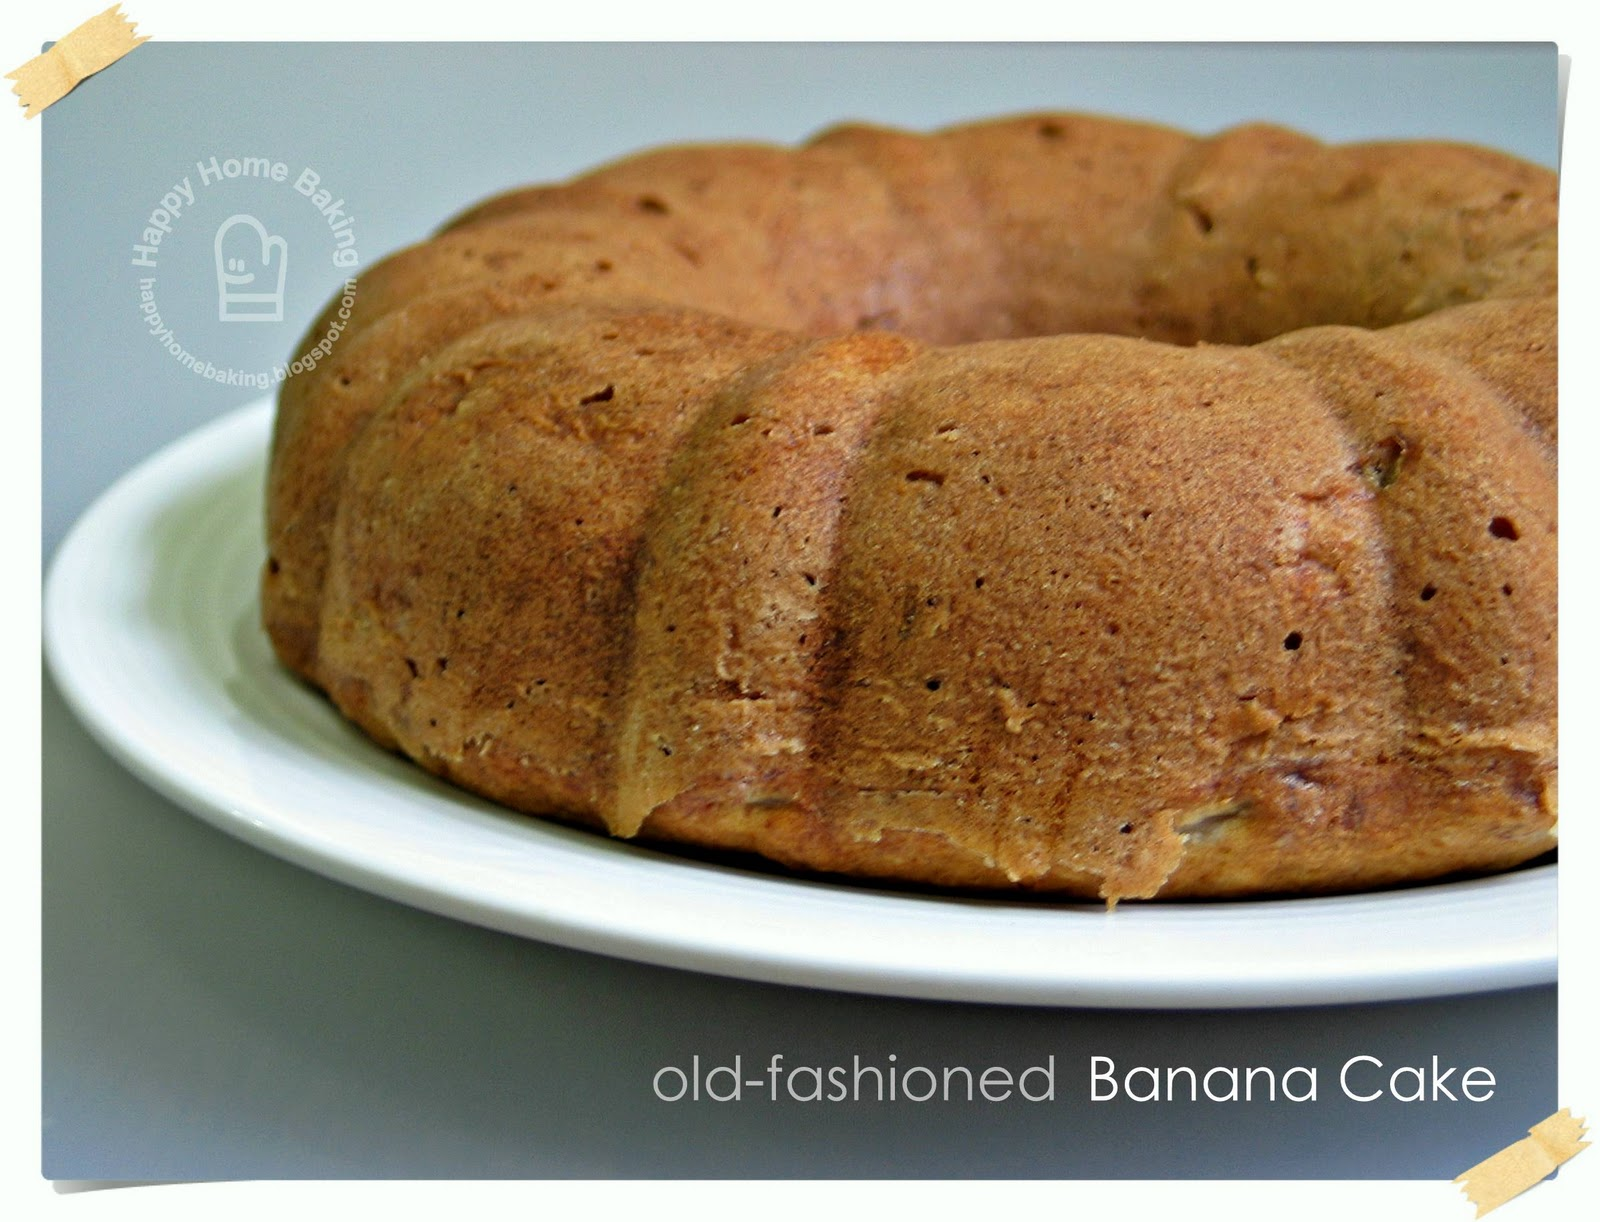 Banana Cake Recipe With Oil Joy Of Baking: Happy Home Baking: Old-fashioned Banana Cake